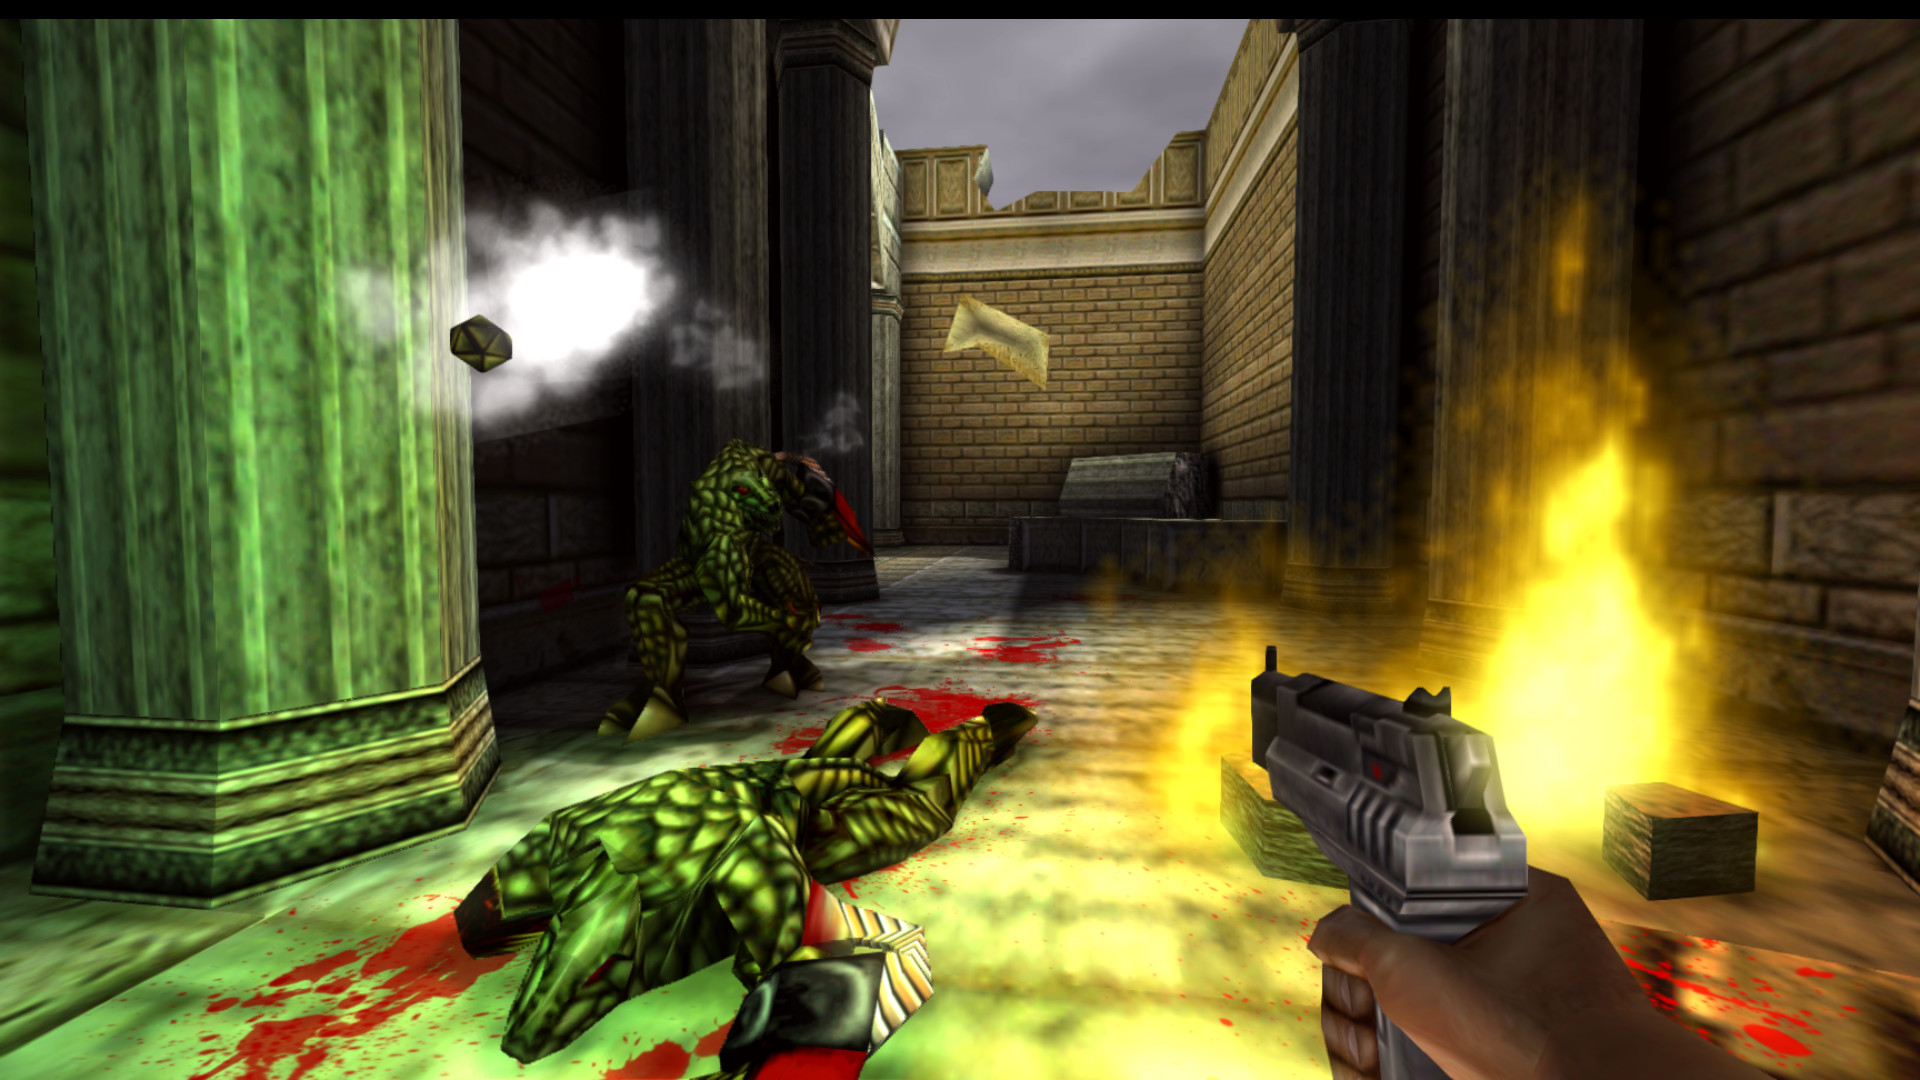 Turok 2: Seeds of Evil (Steam Global Account)